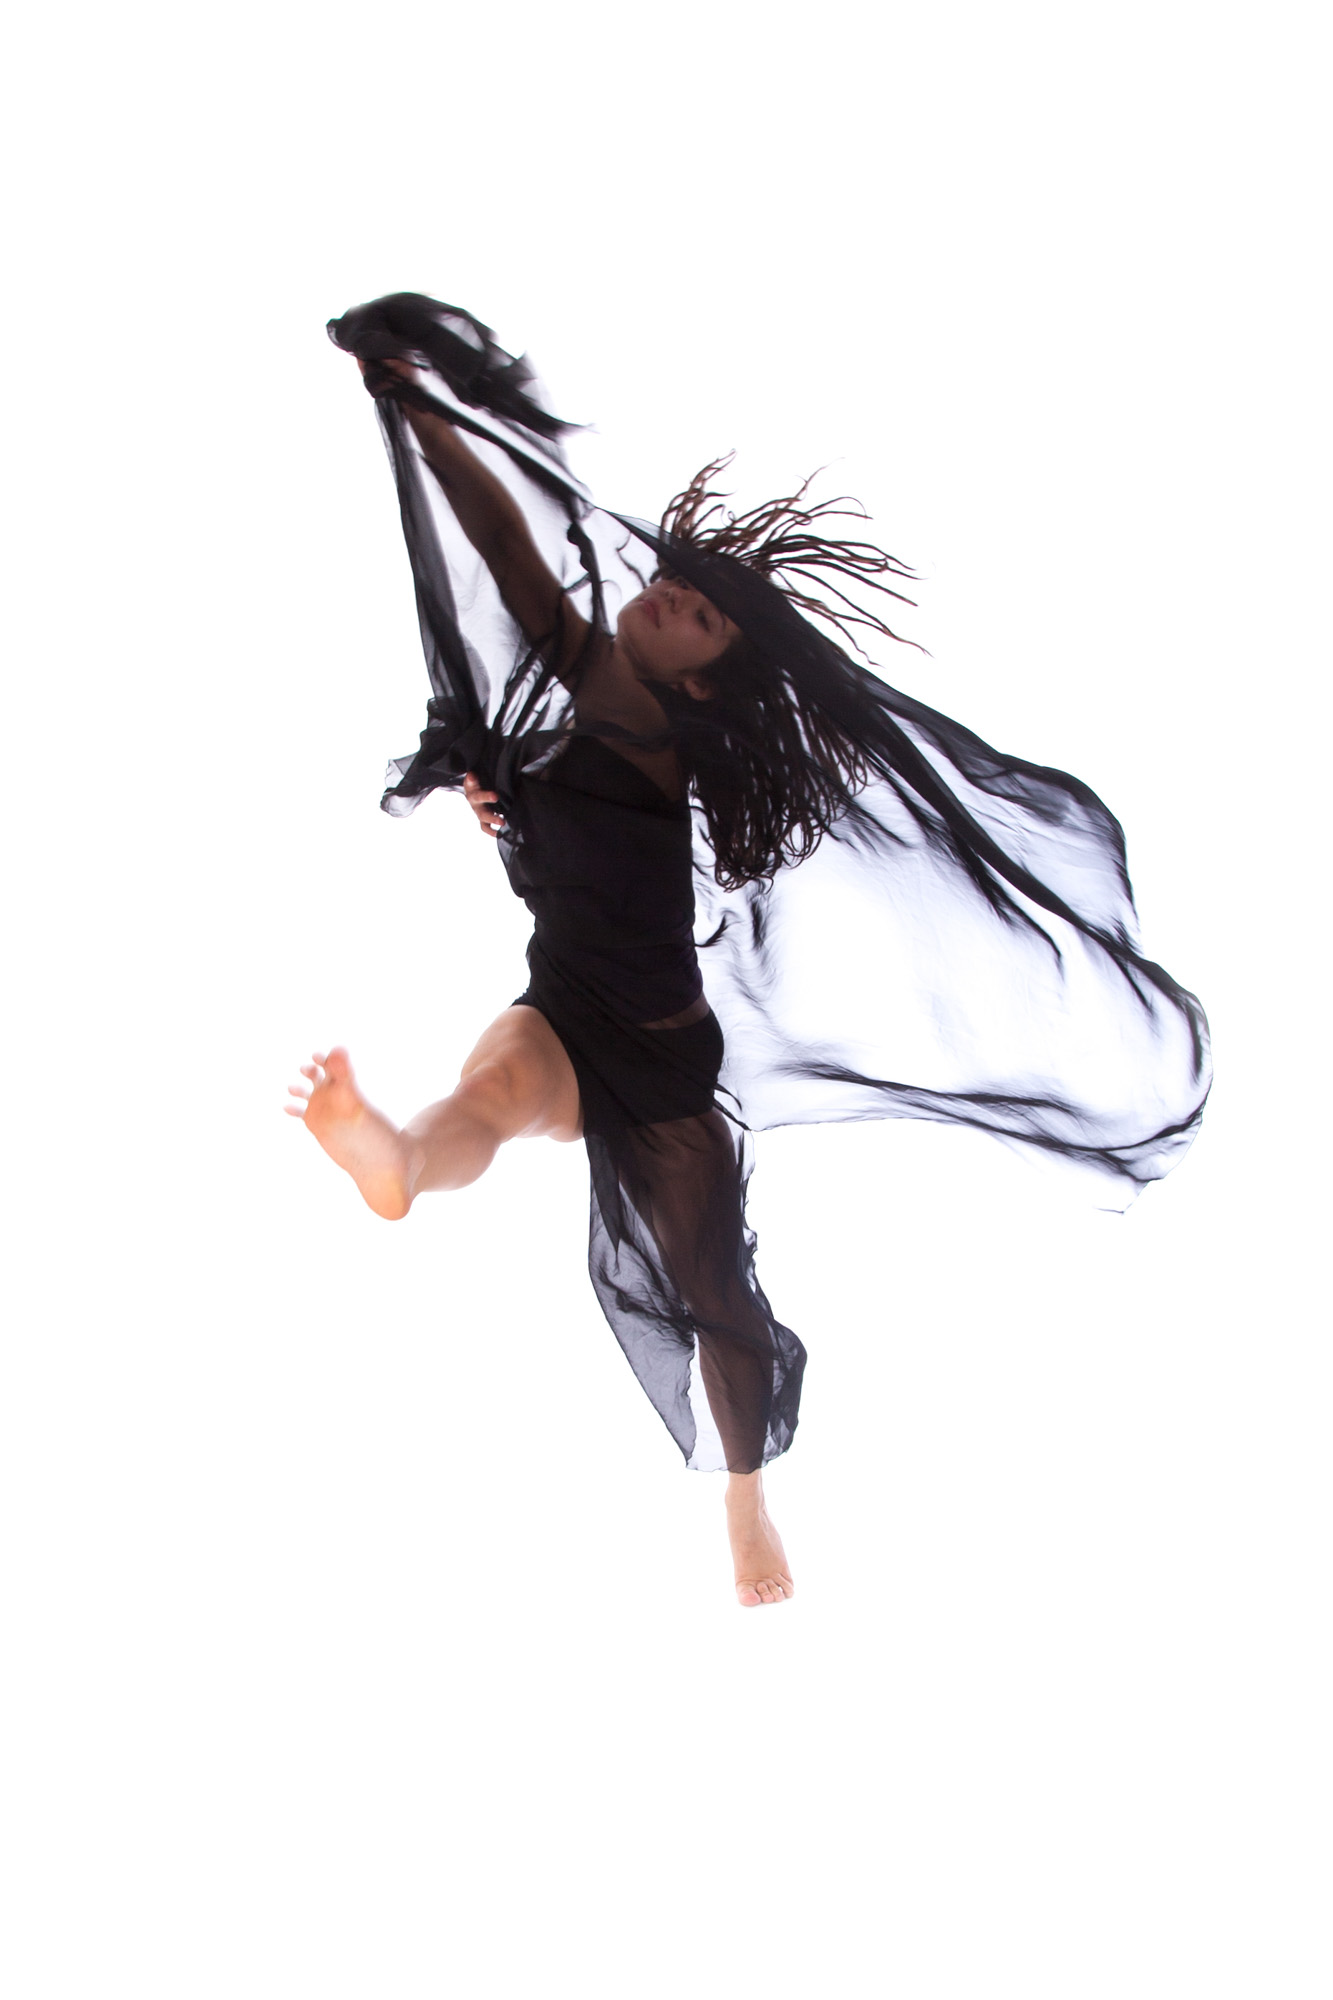 Moving bodies in Urban spaces